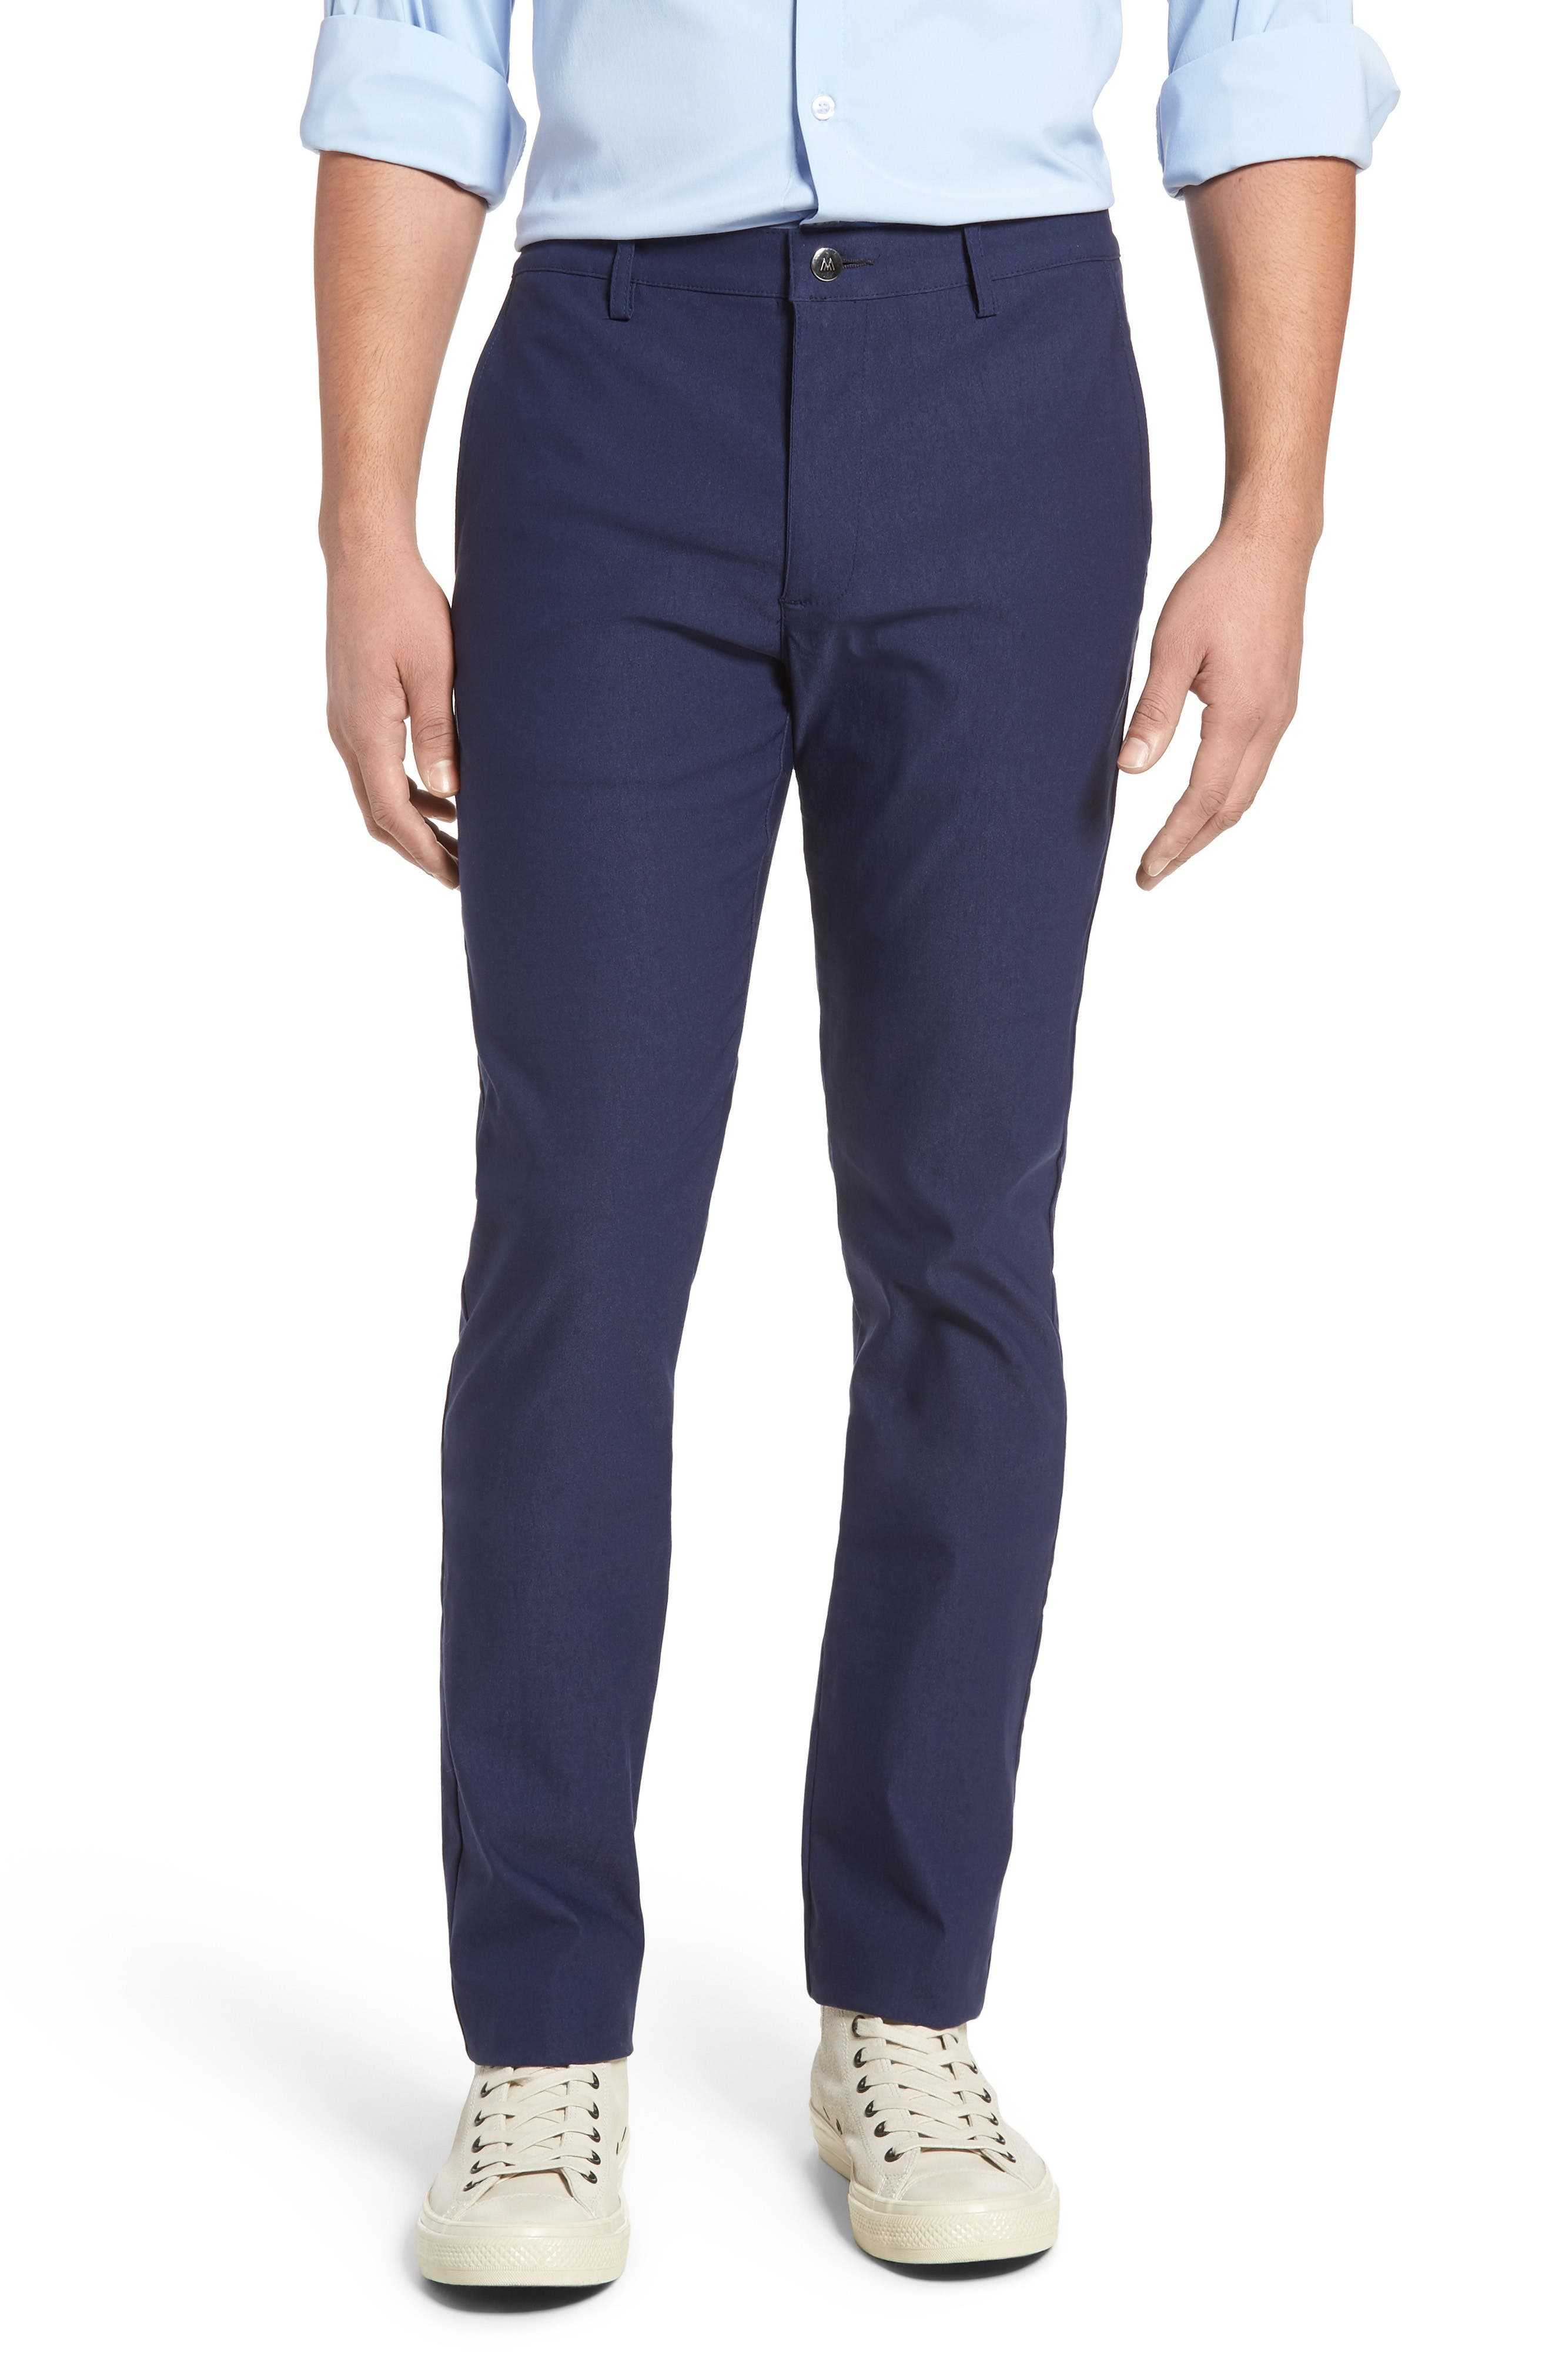 President Trim Fit Performance Chinos,                         Main,                         color, Navy